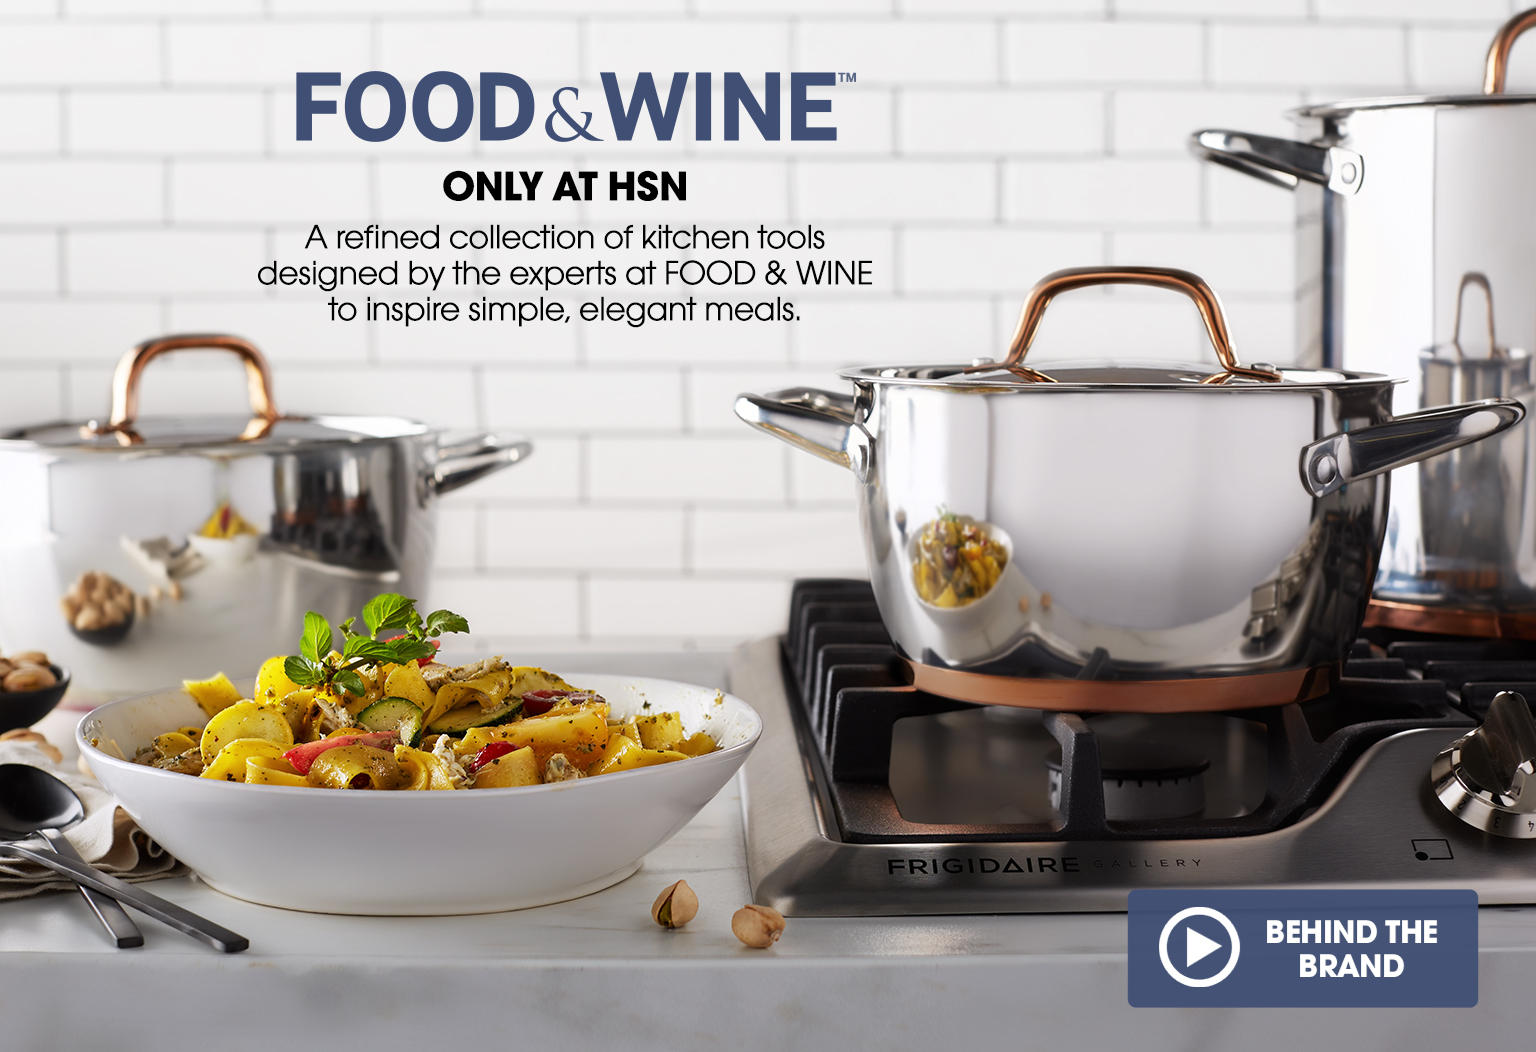 Food & Wine logo. Only at HSN. A refined collection of kitchen tools designed by the experts at food & wine to inspire simple, elegant meals